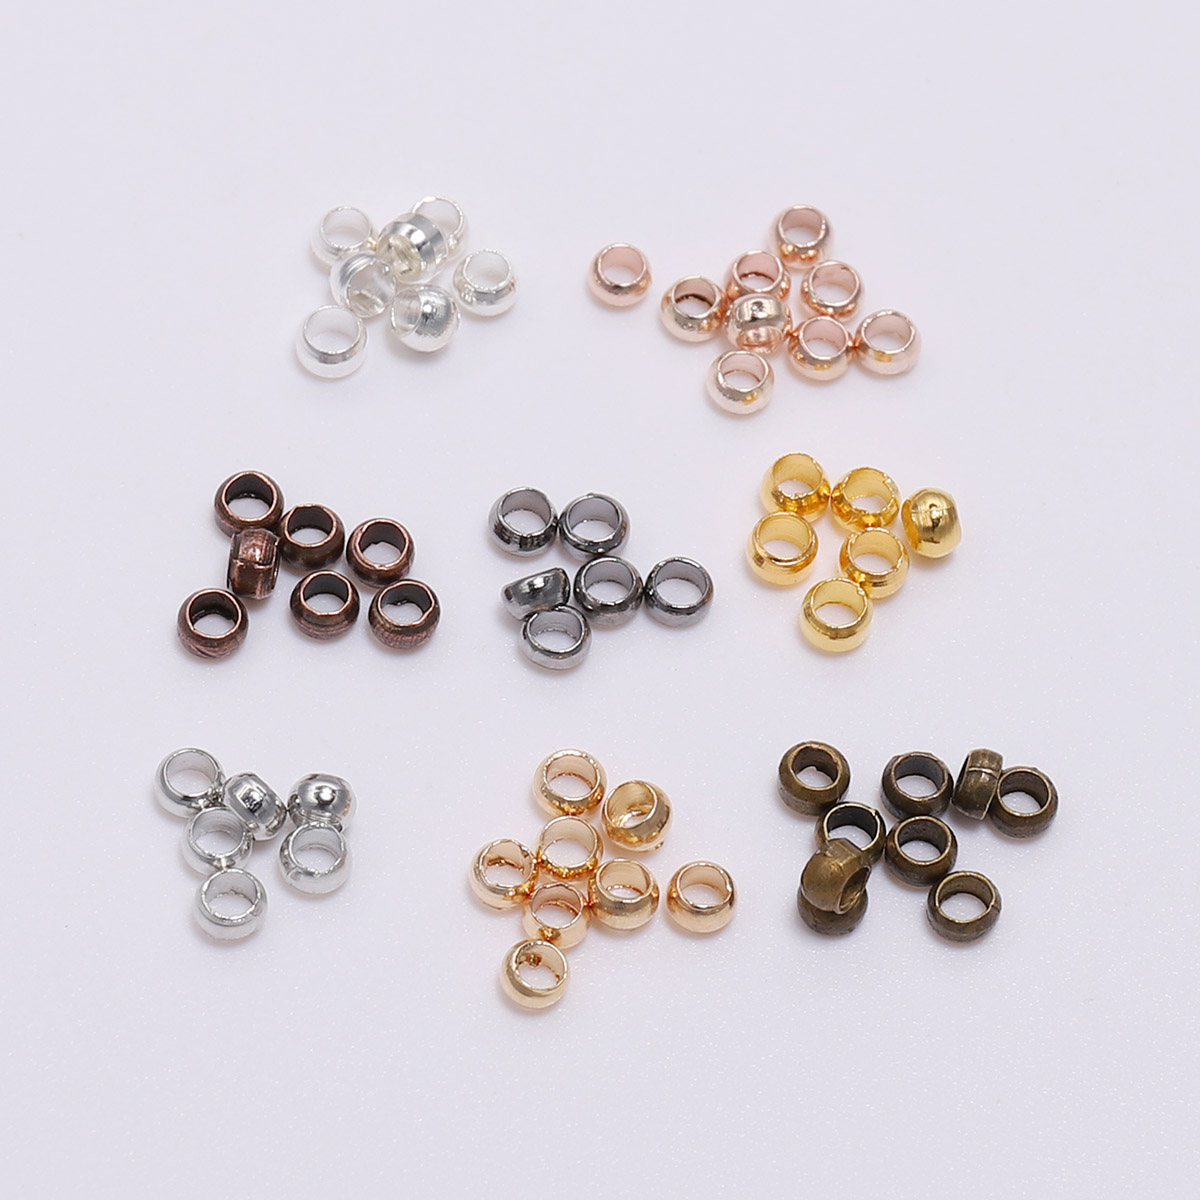 500pcs/lot 2/2.5/3 Mm Silver Gold Antique Bronze Ball Plunger Bead Smooth Ball Crimps Beads For Jewelry Making Finding Accessory